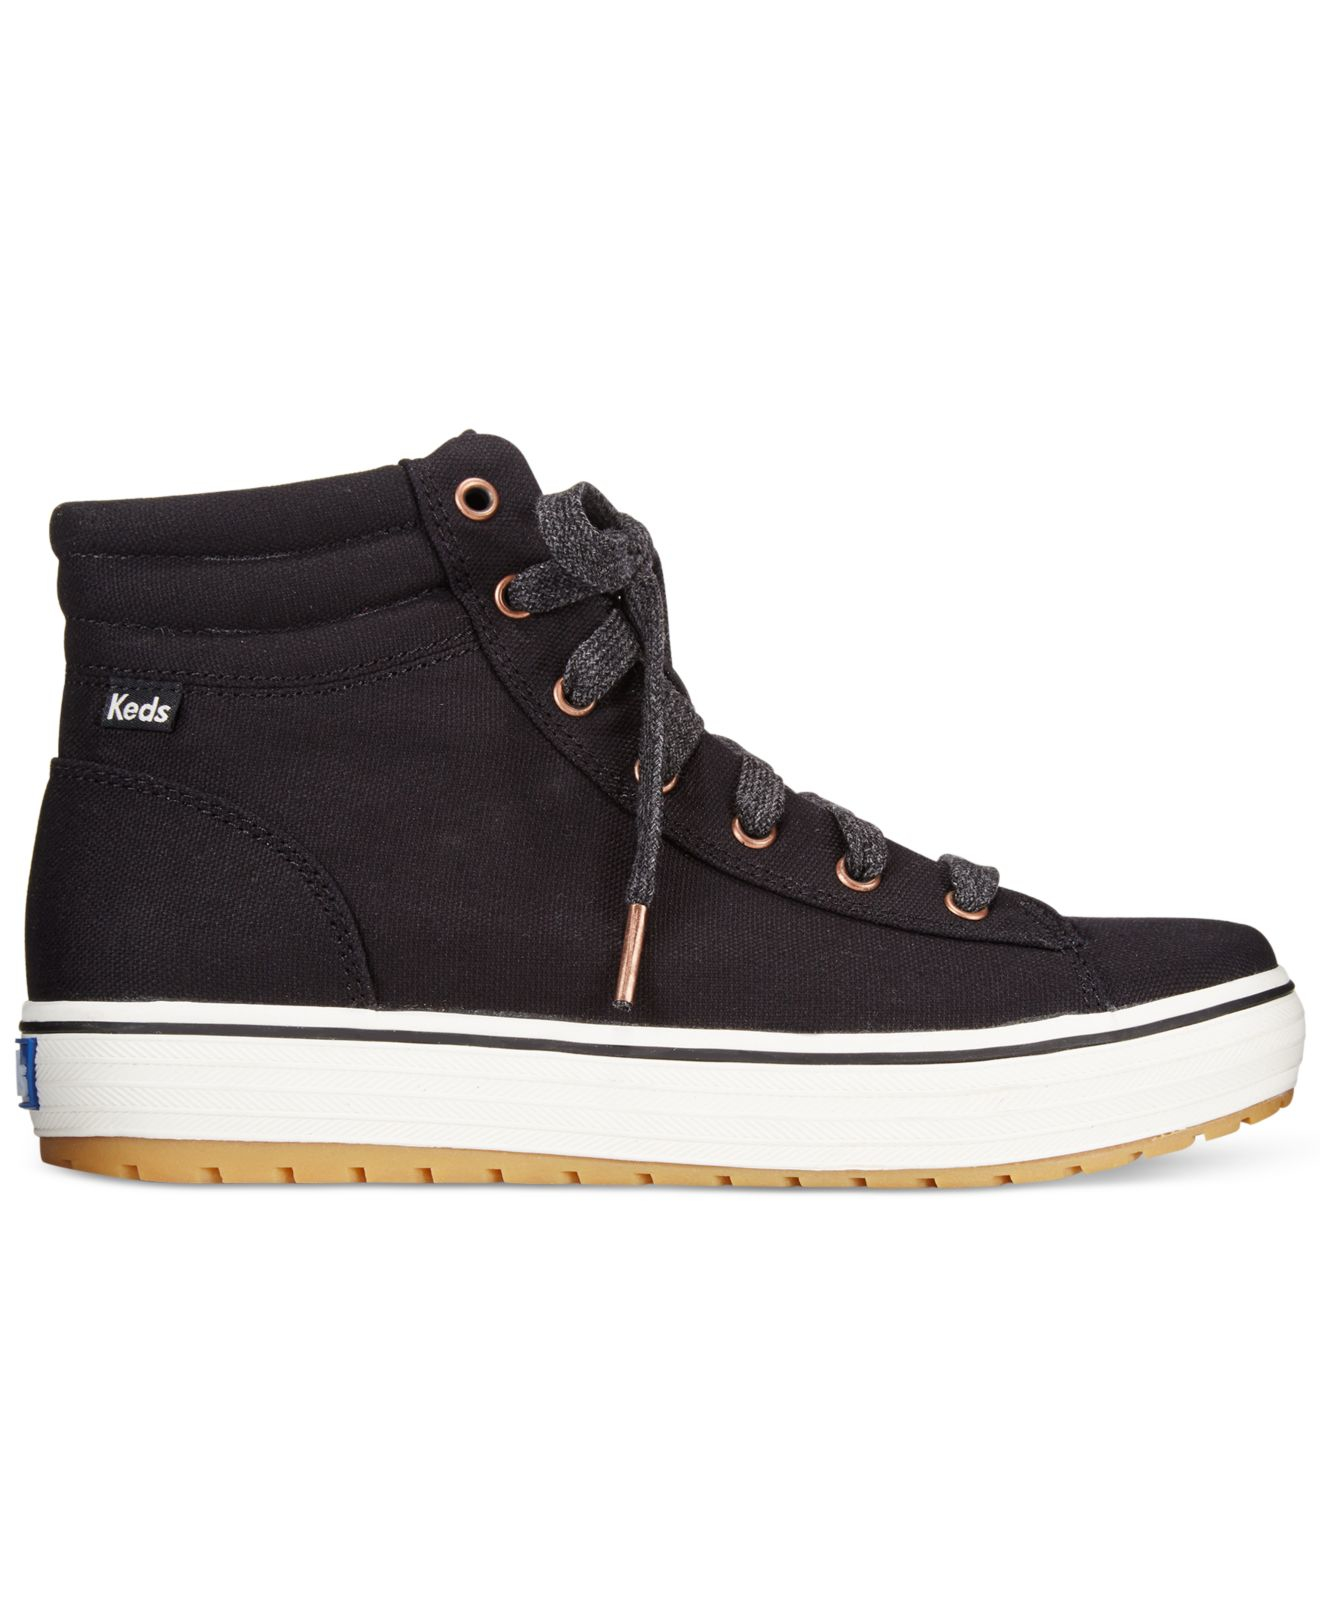 keds s high rise high top sneakers in black lyst